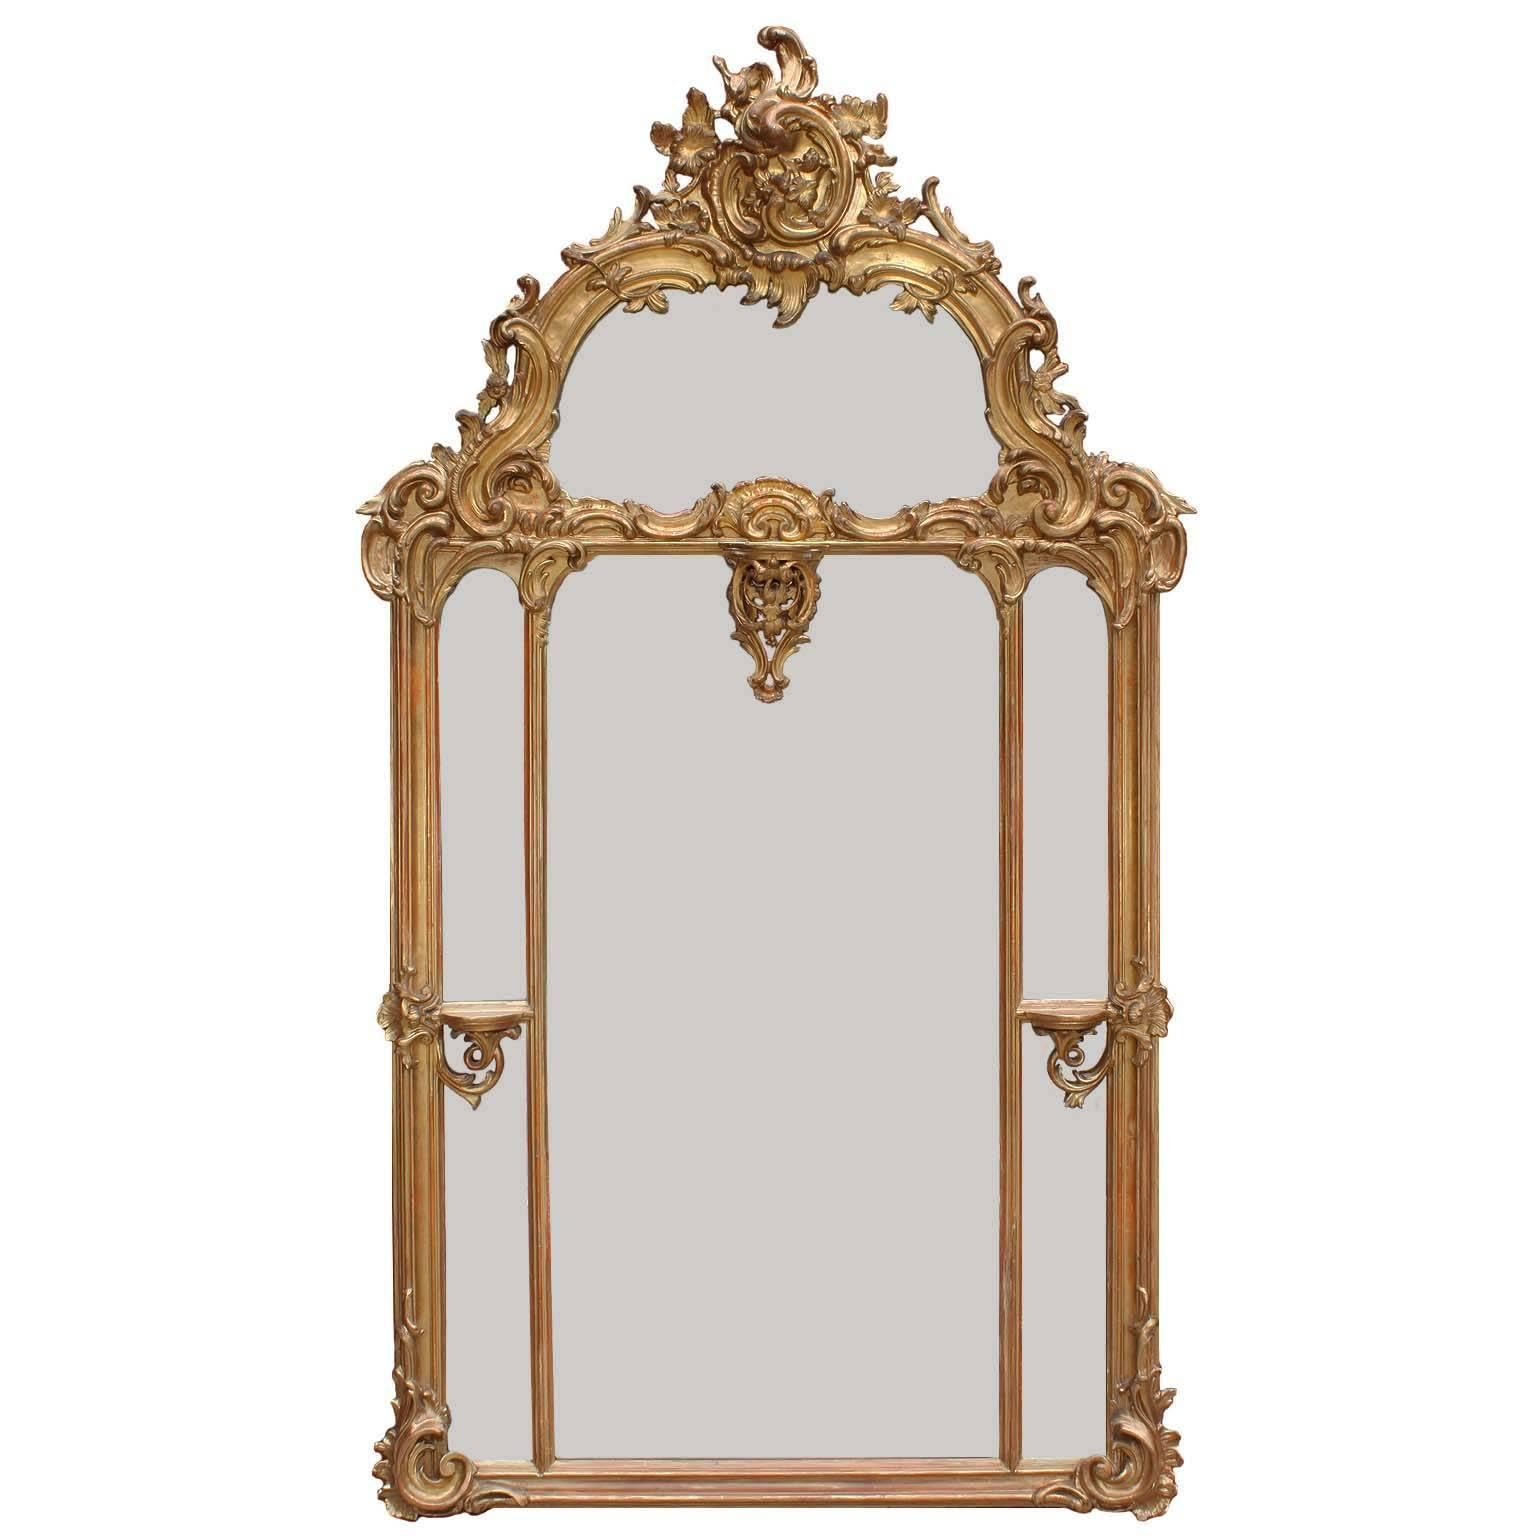 Austrian 19th Century Rococo Style Giltwood Carved and Gesso Overmantel Mirror